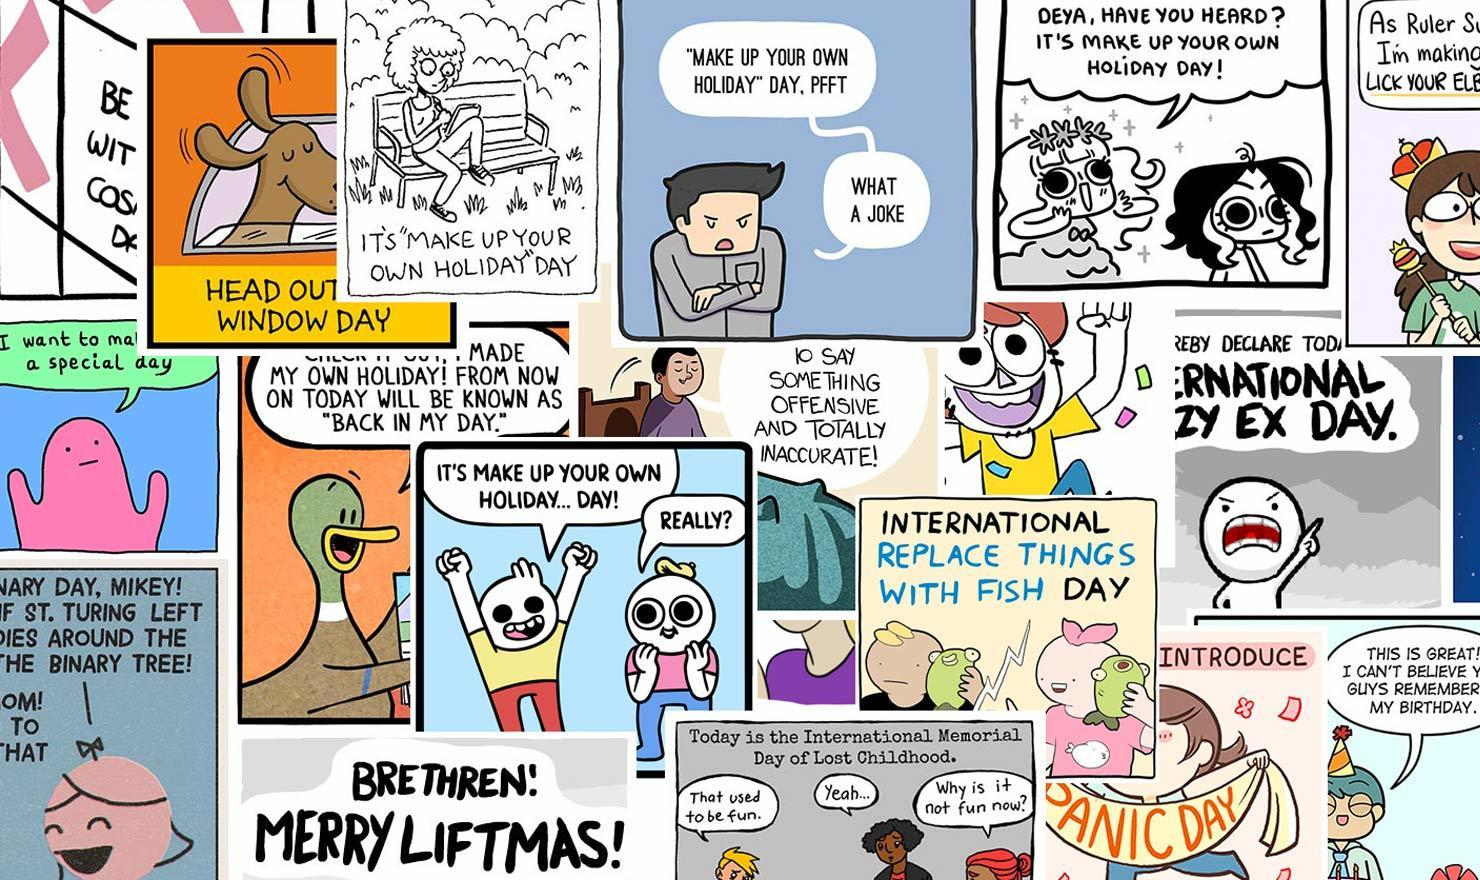 24 Awesome Cartoonists Make Up Their Own Holidays In These Hilarious Comics